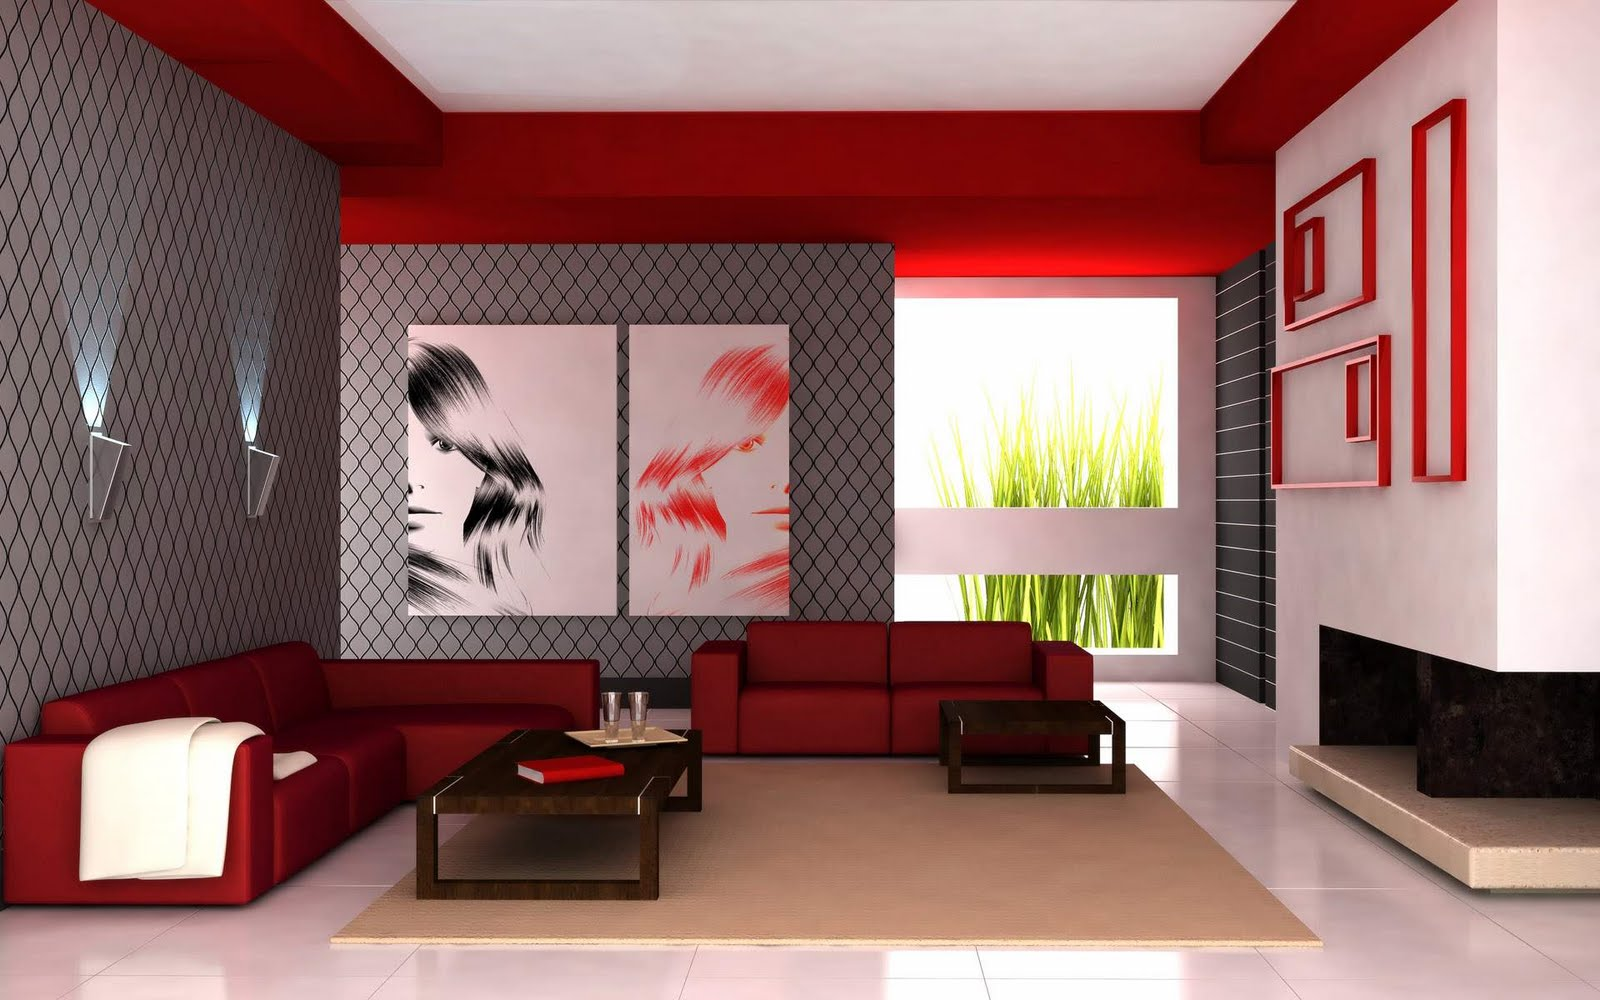 combine red and grey living room color schemes with red sectional sofas and oak coffee table - Interior Design Living Room Color Scheme